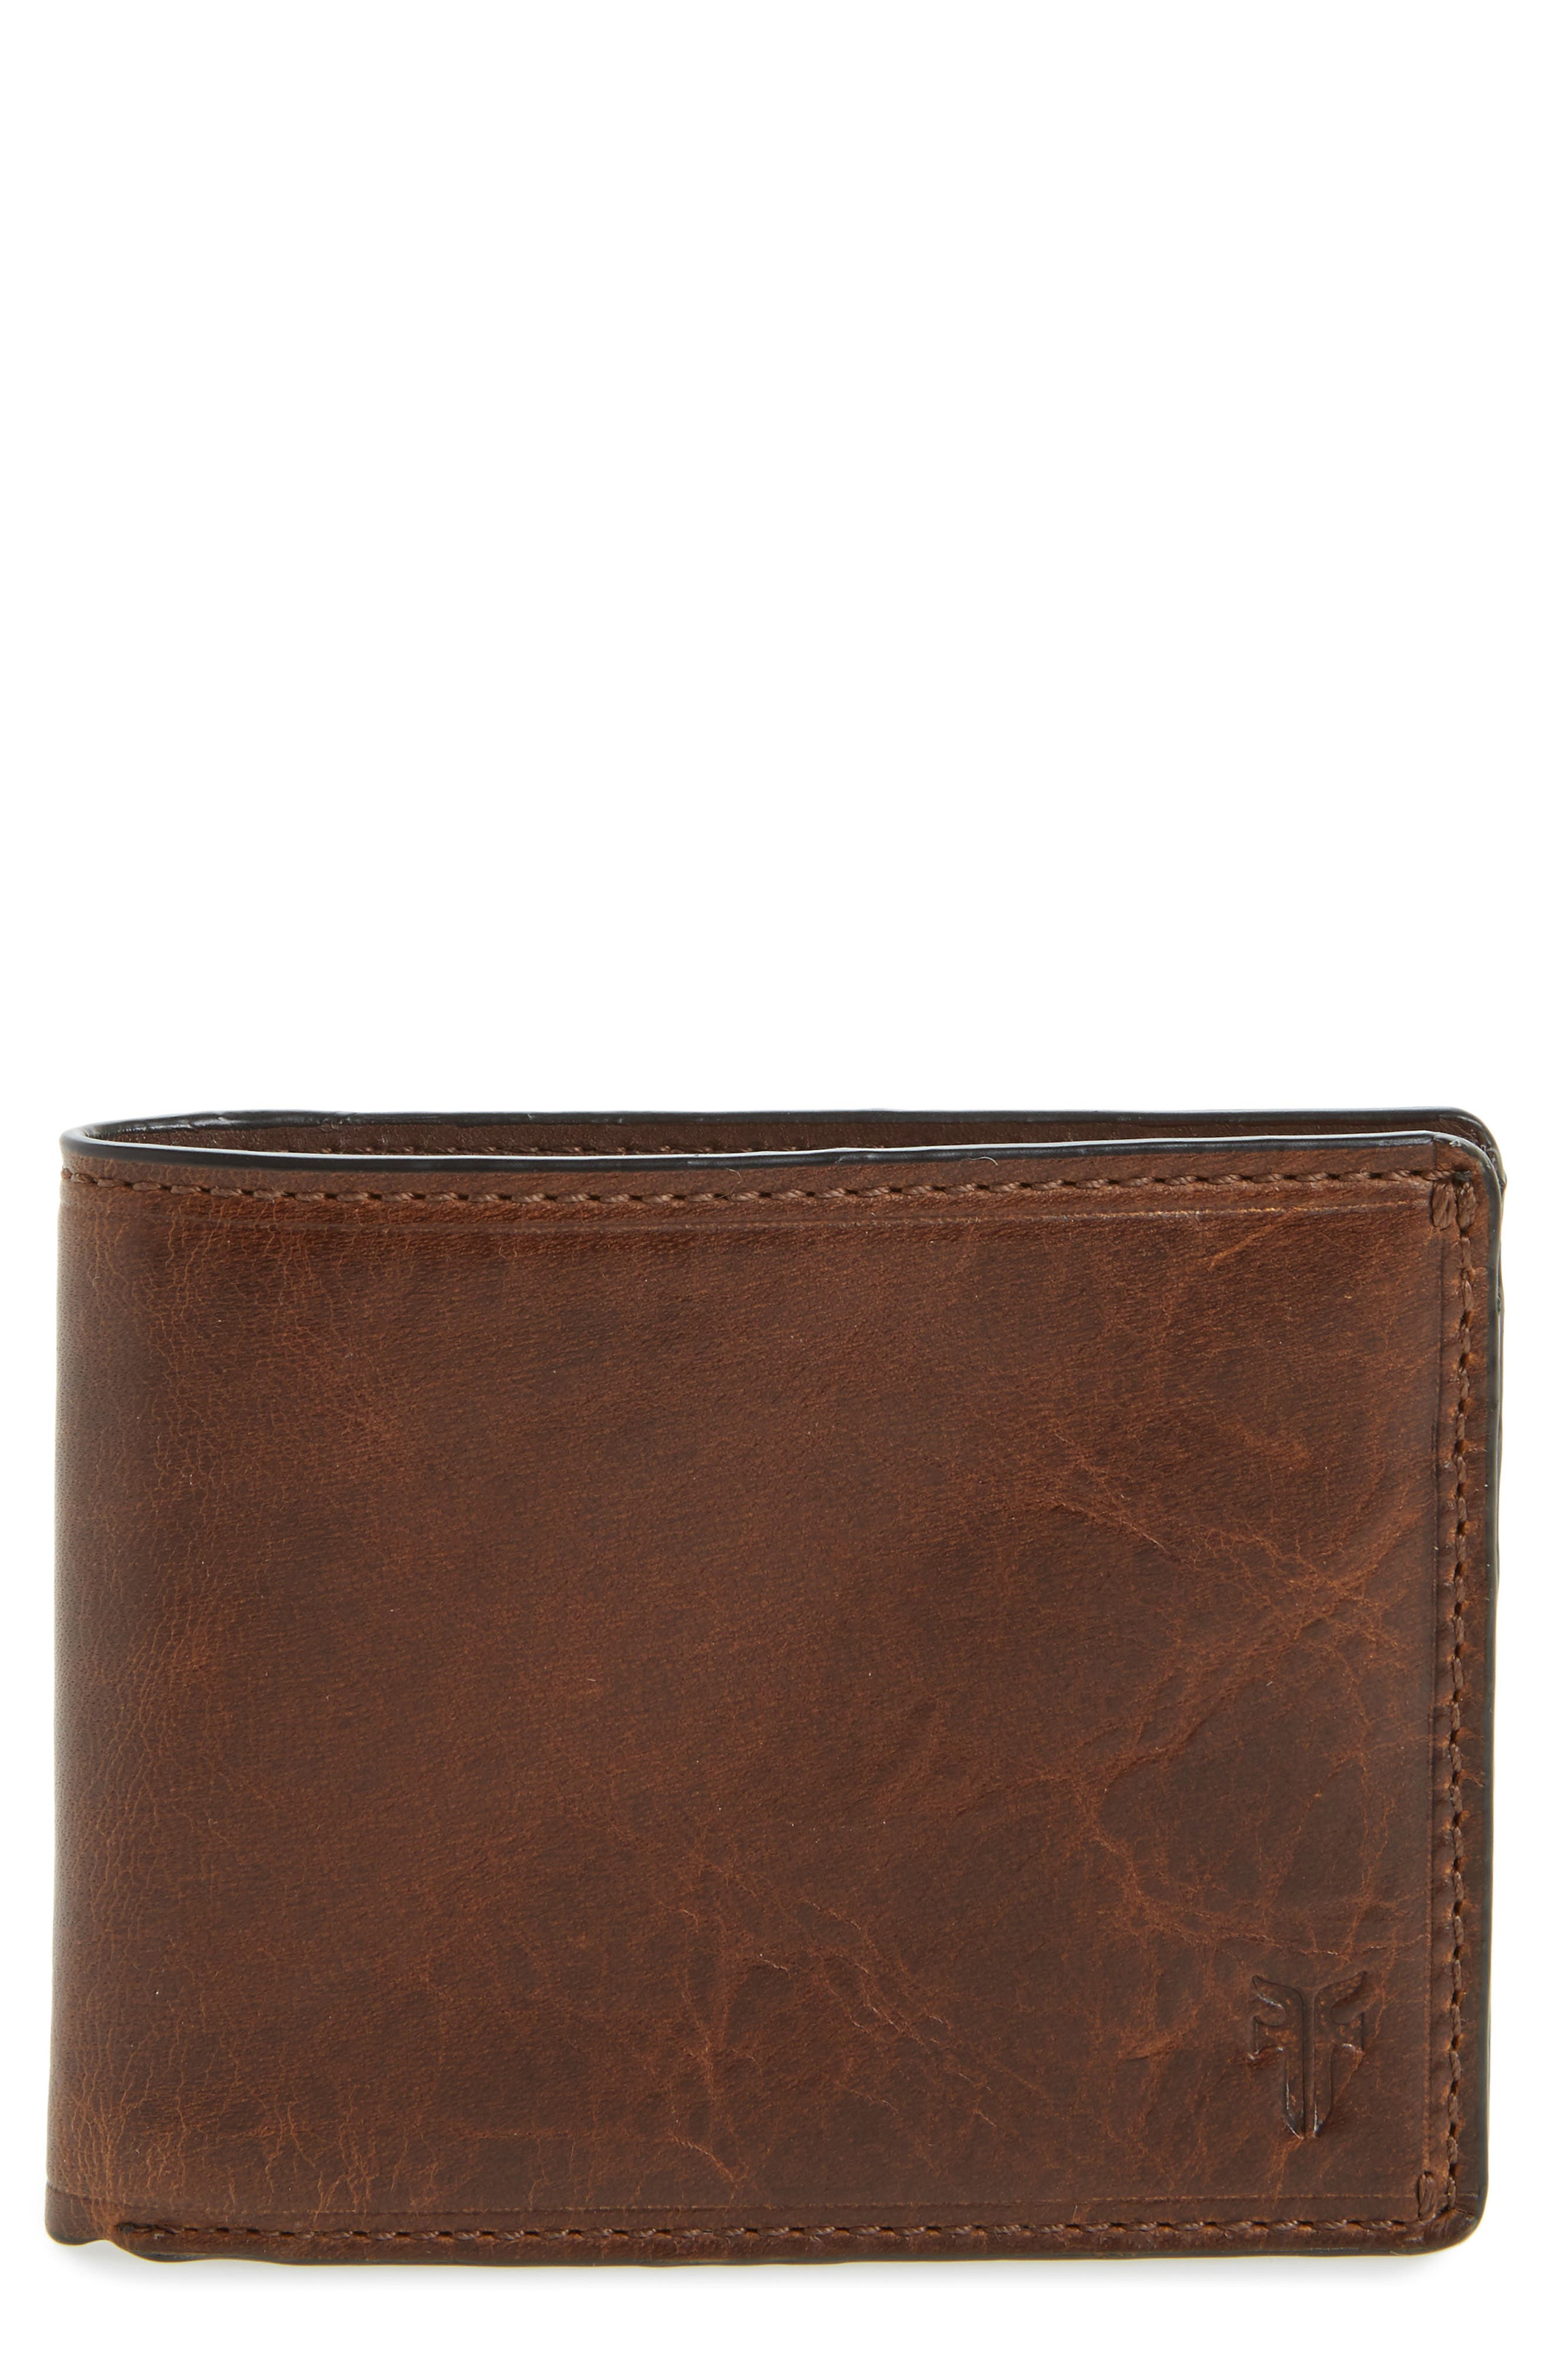 Frye Logan Leather Wallet